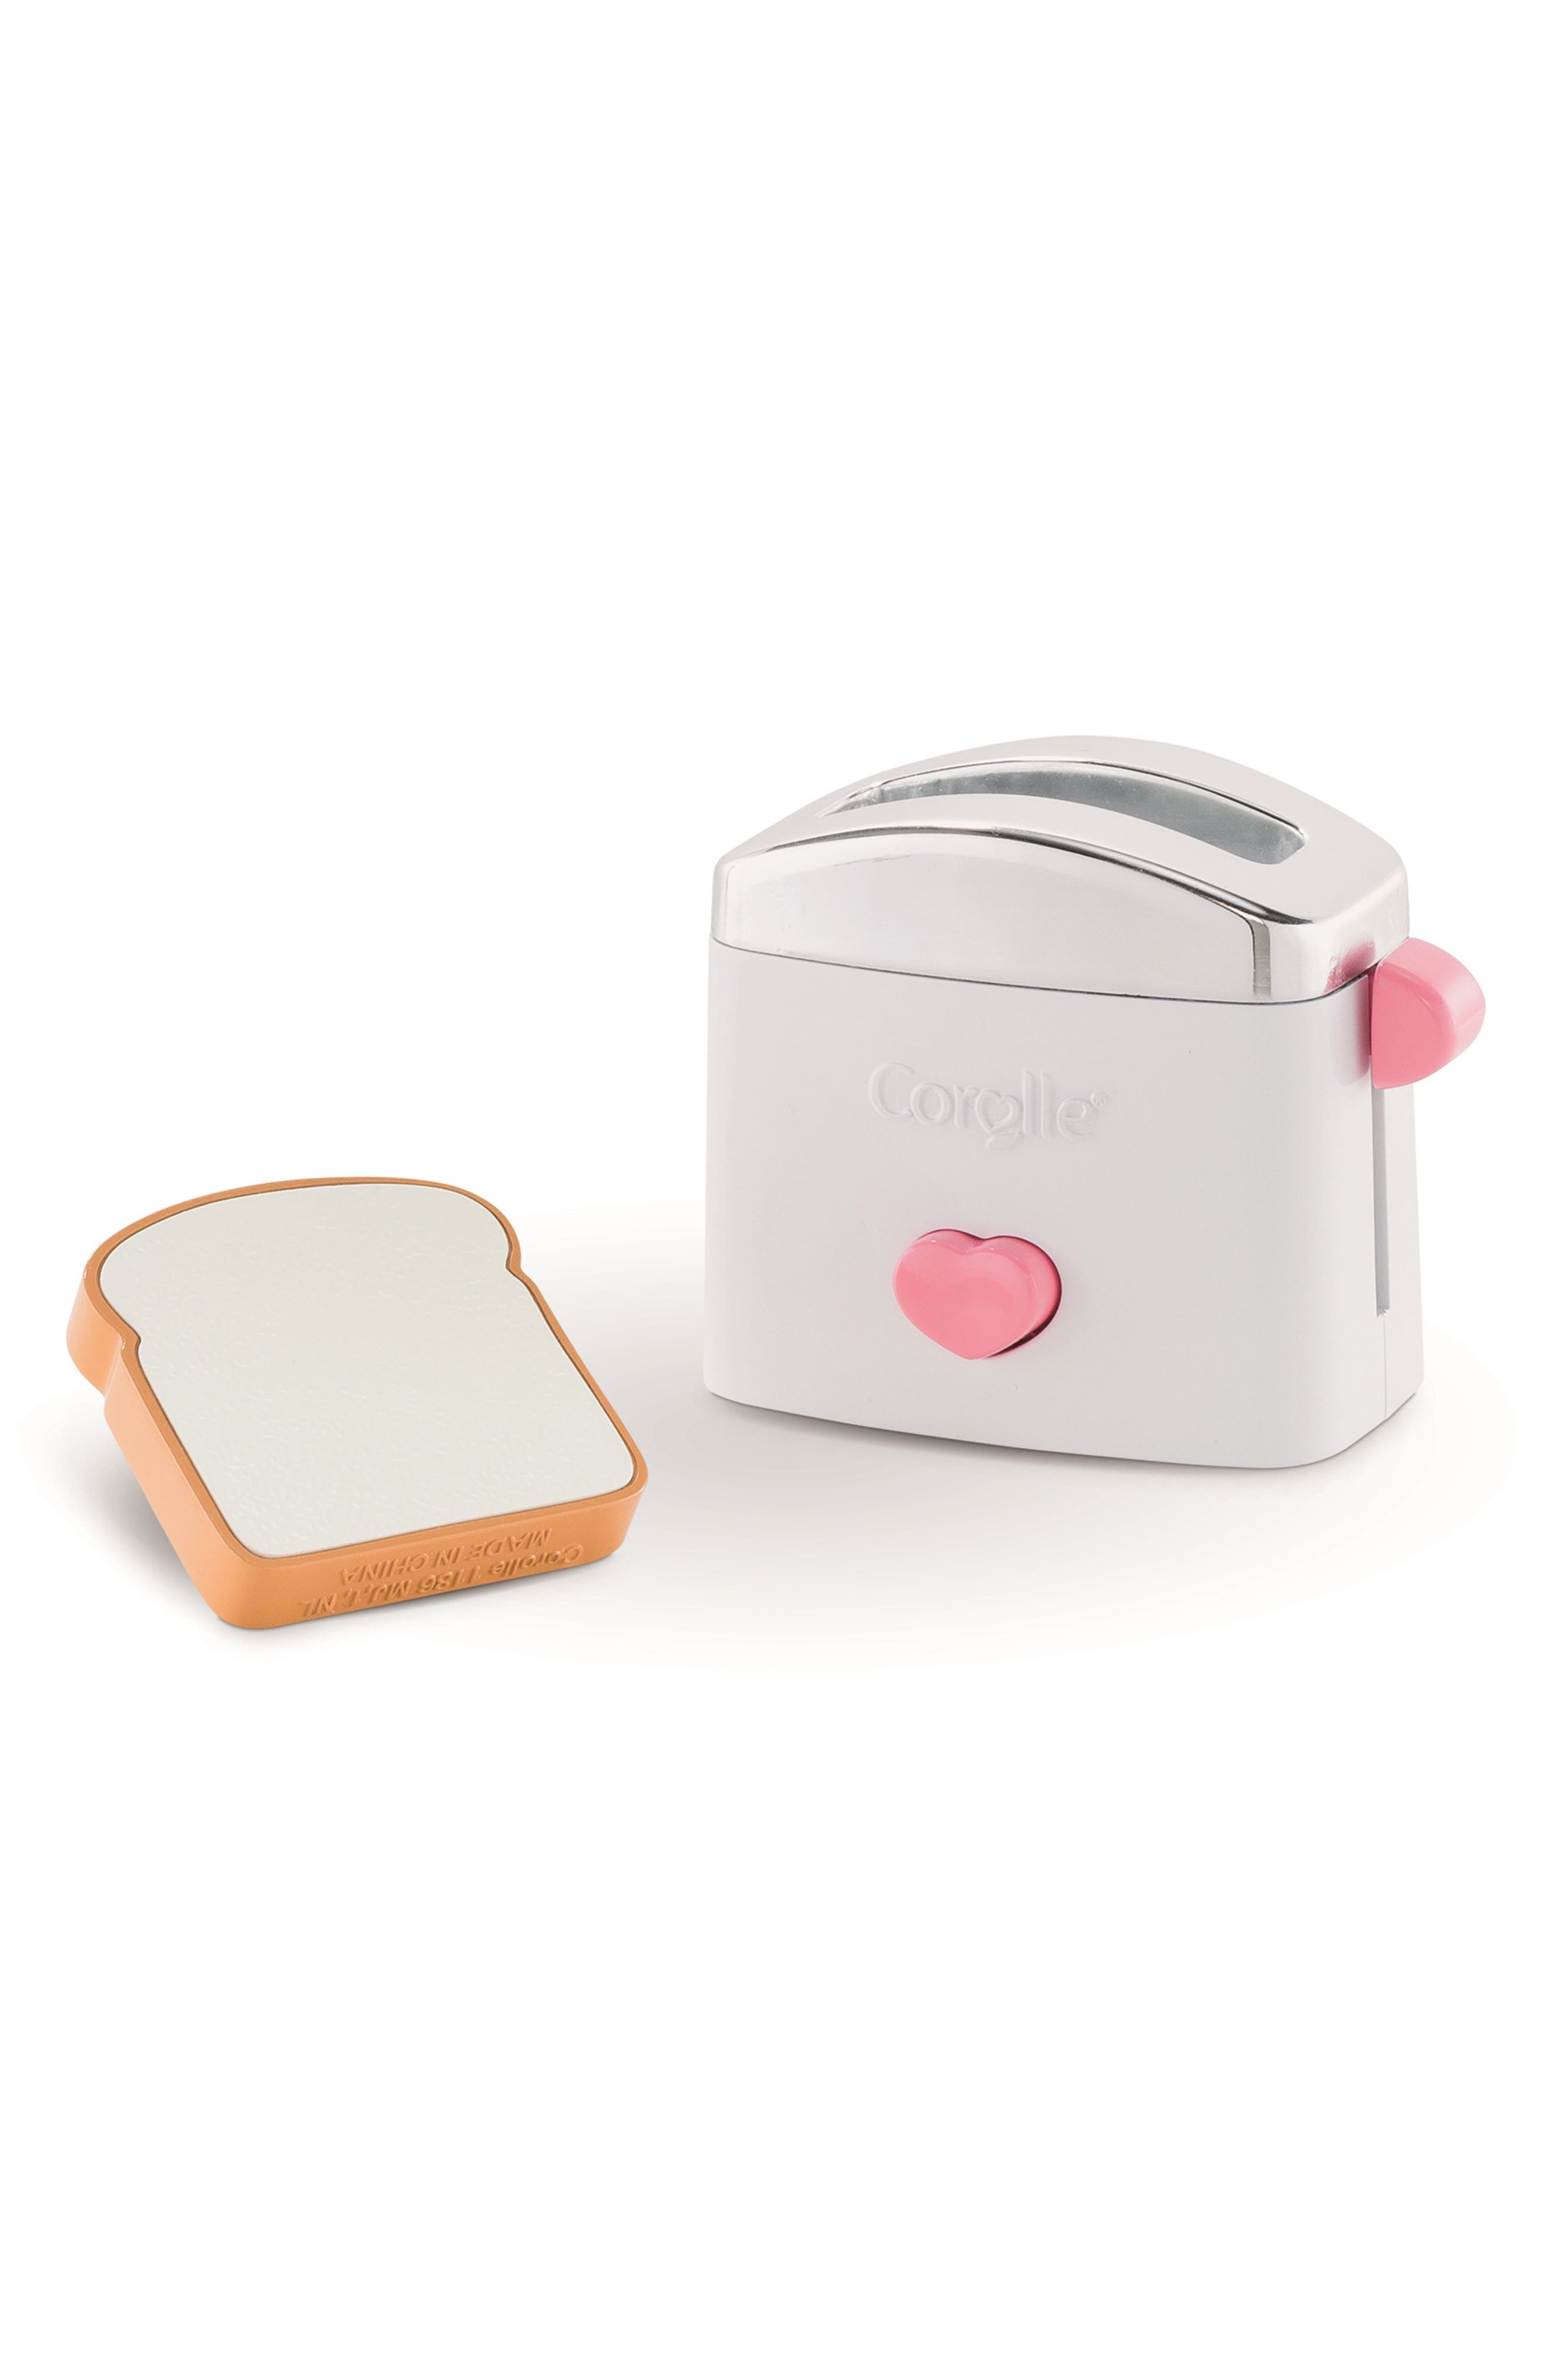 Toy Toaster & Toast Play Set,                             Main thumbnail 1, color,                             100